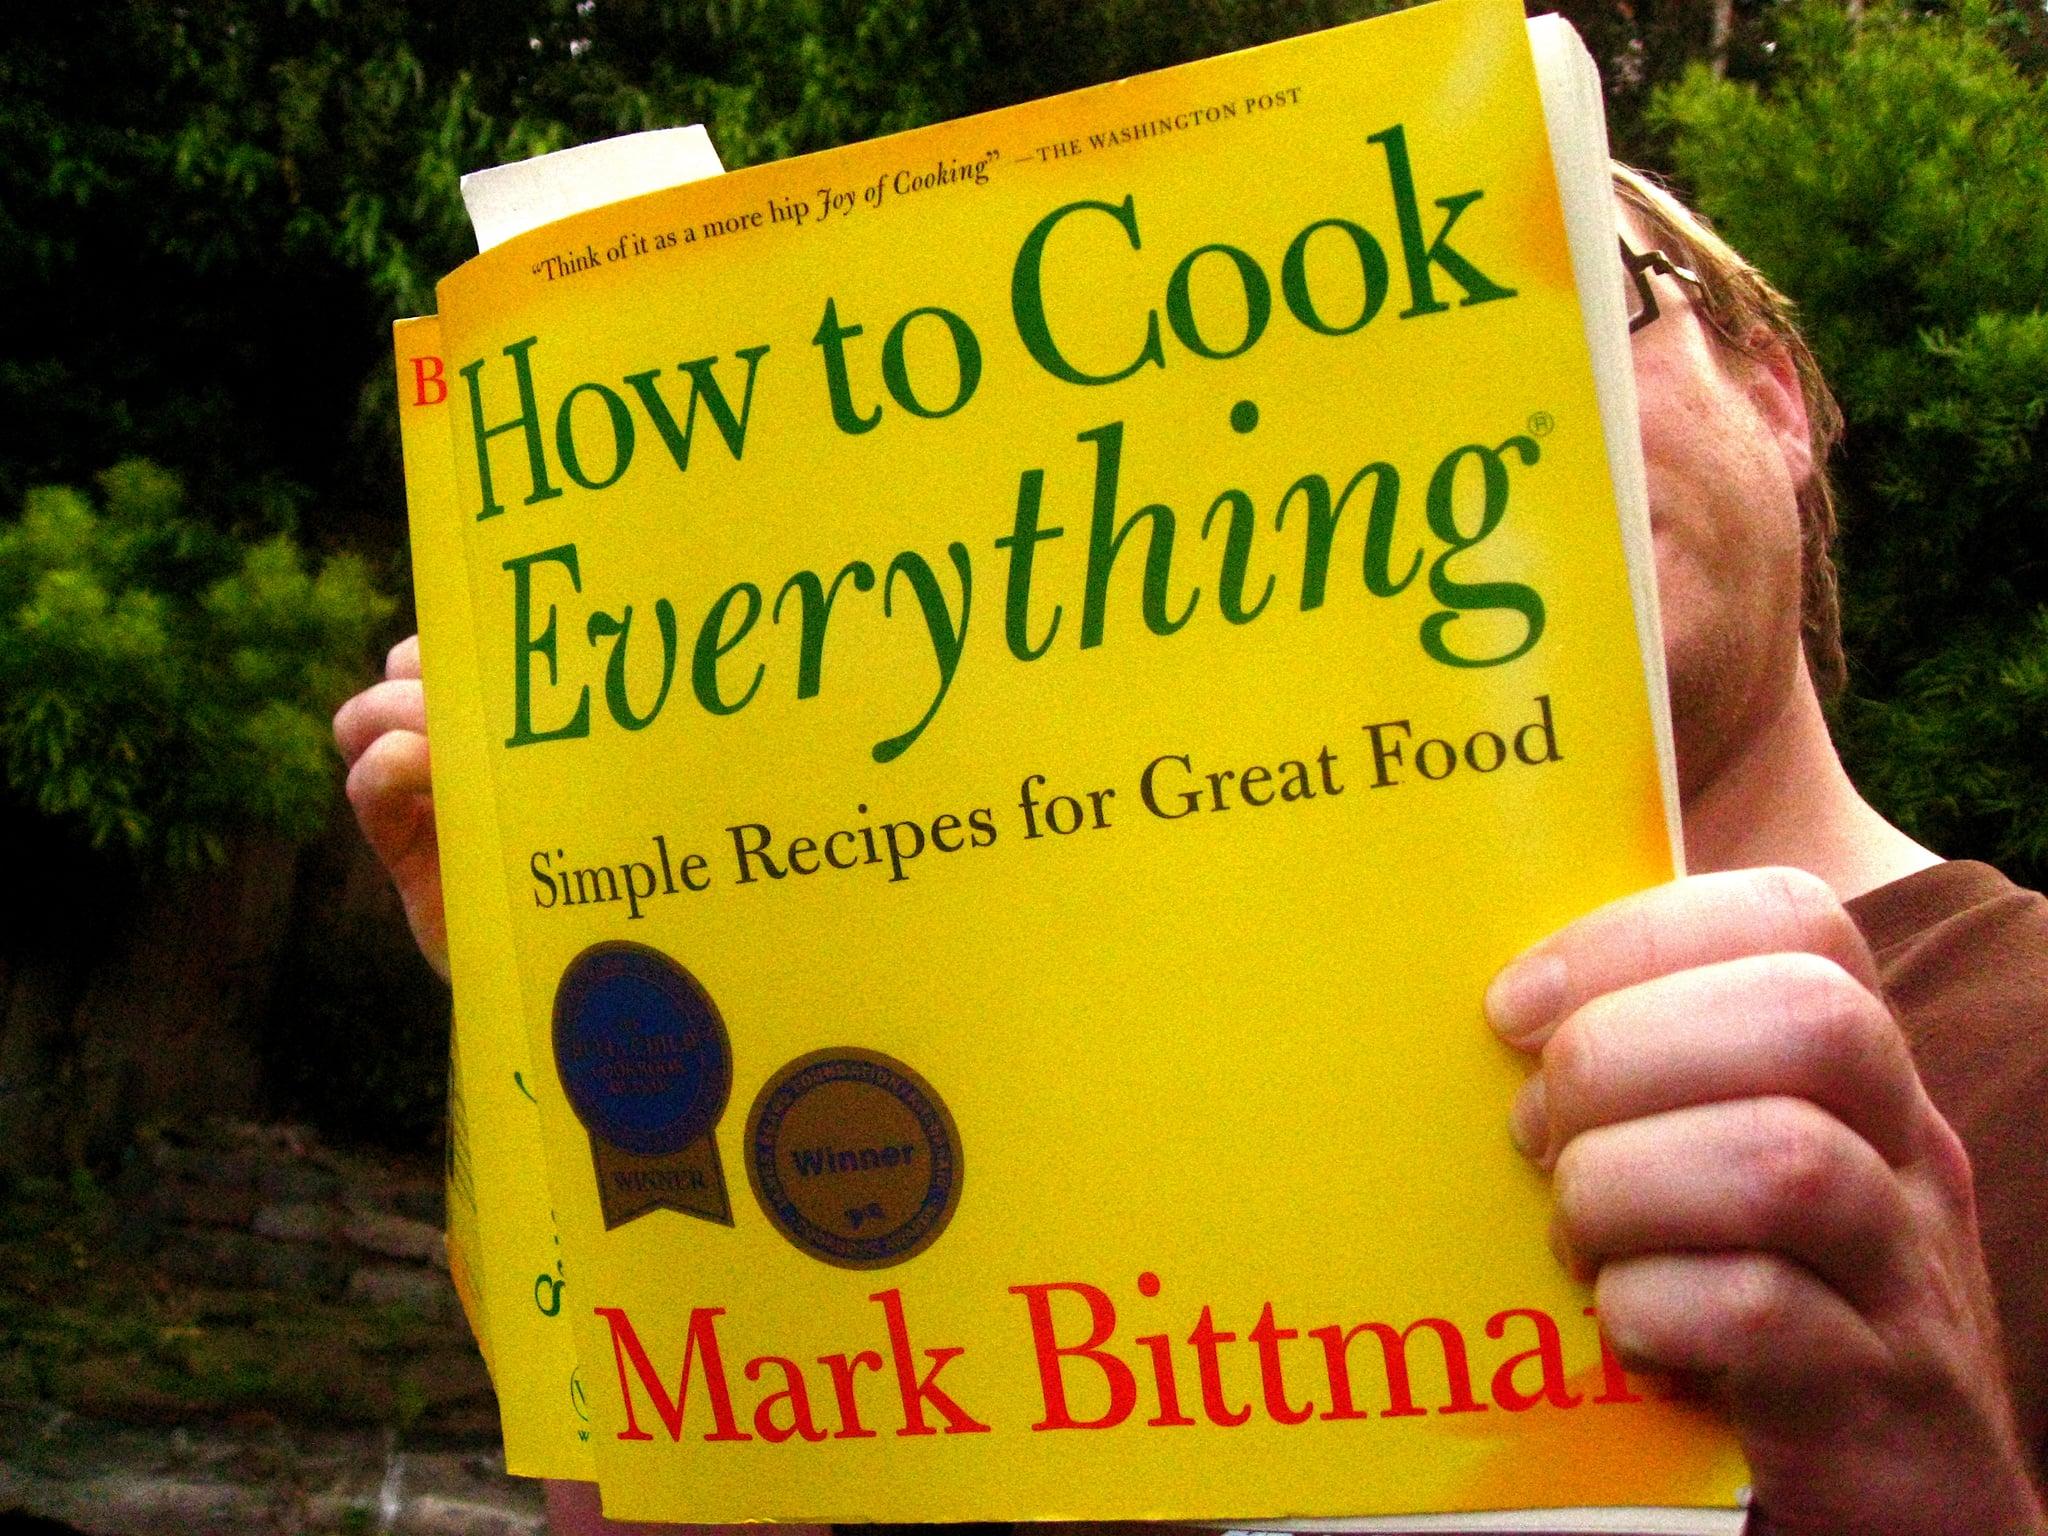 You Showed Us Your Cookbooks!